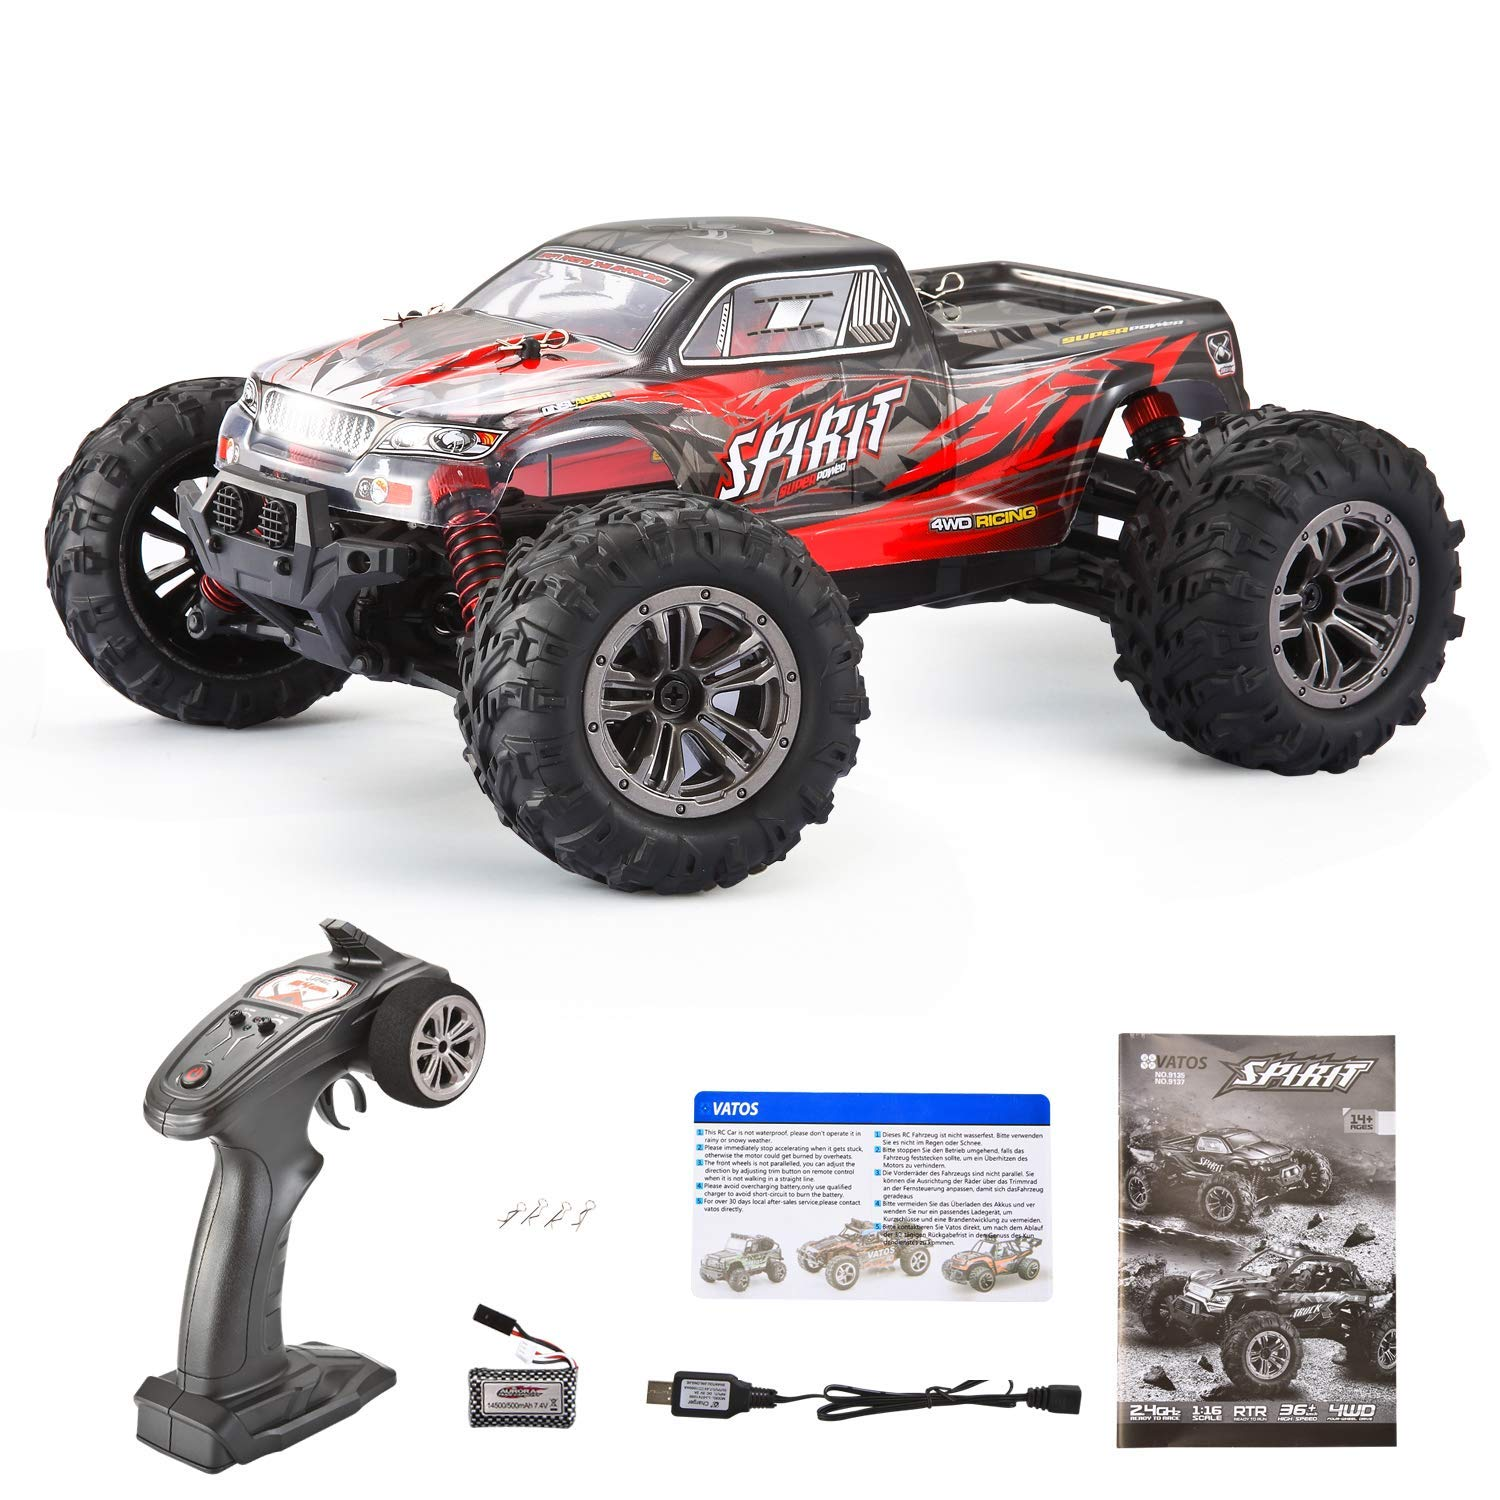 VATOS Remote Control Car High Speed Off-Road Vehicle 1:16 Scale 36km/h 4WD 2.4GHz Electric Racing Car RC Buggy Vehicle Truck Buggy Crawler Toy Car for Adults and Kids by VATOS (Image #9)